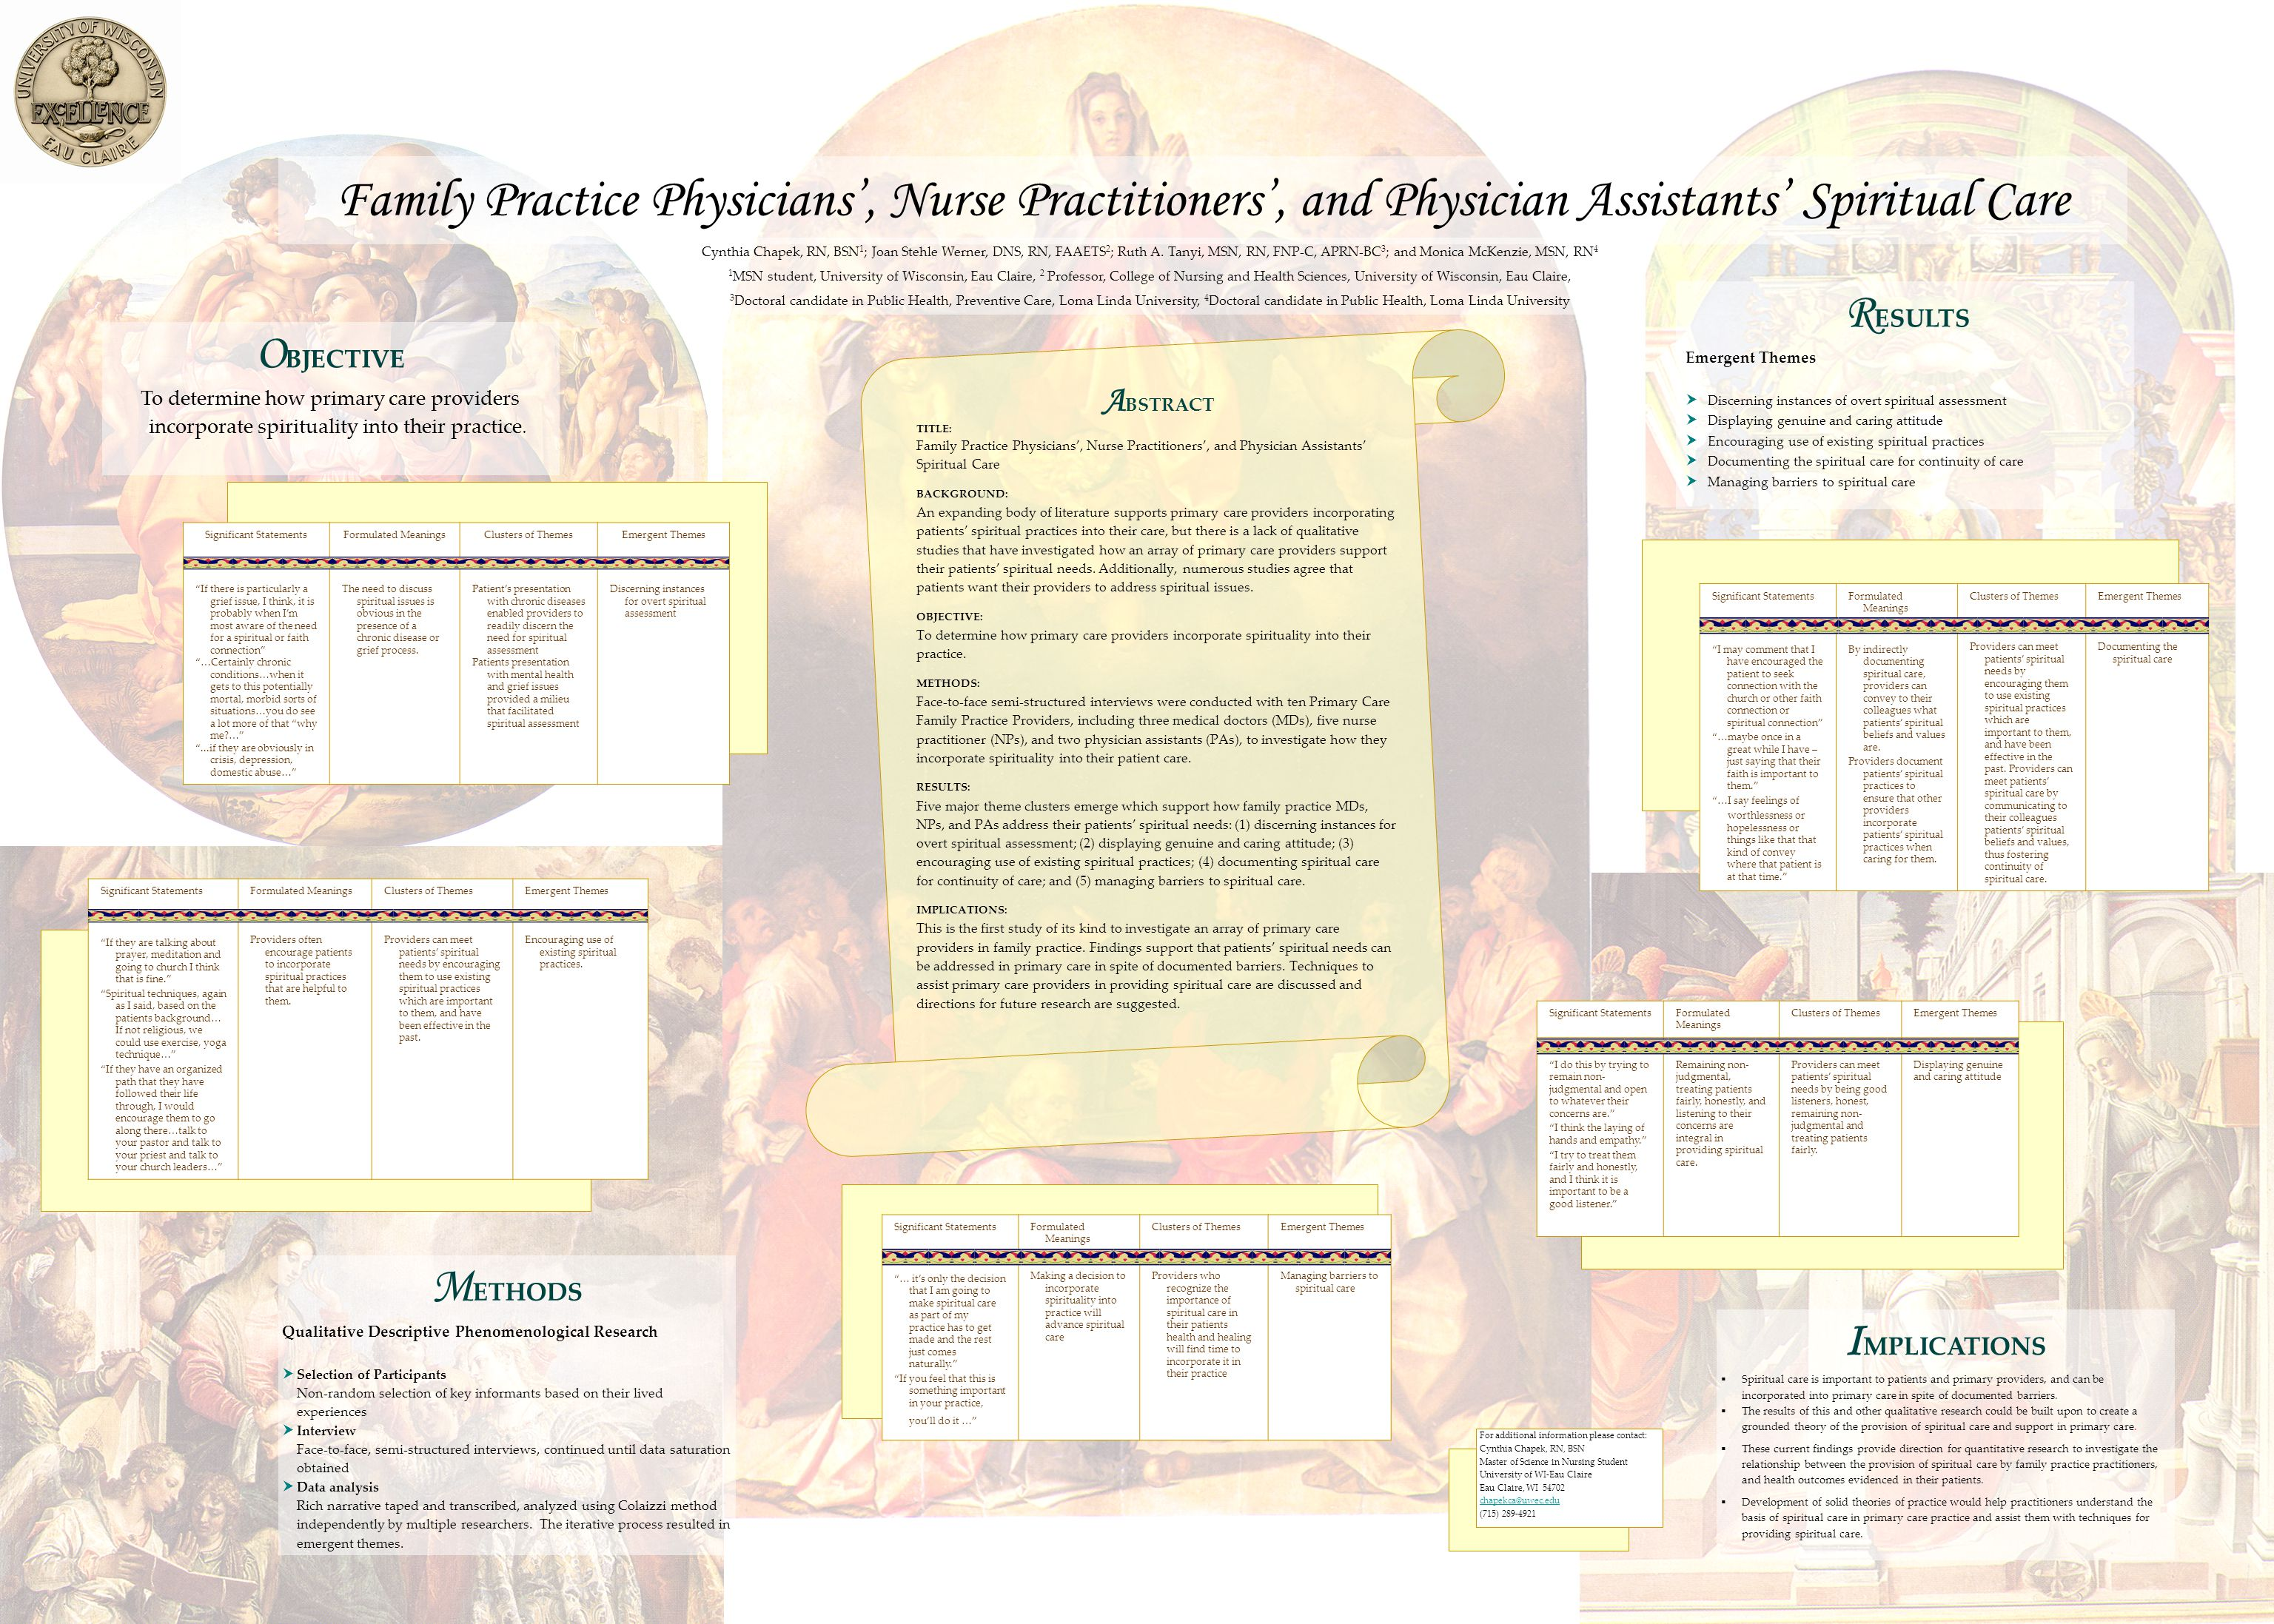 Family Practice Physicians', Nurse Practitioners', and Physician Assistants' Spiritual Care A BSTRACT TITLE: Family Practice Physicians', Nurse Practi